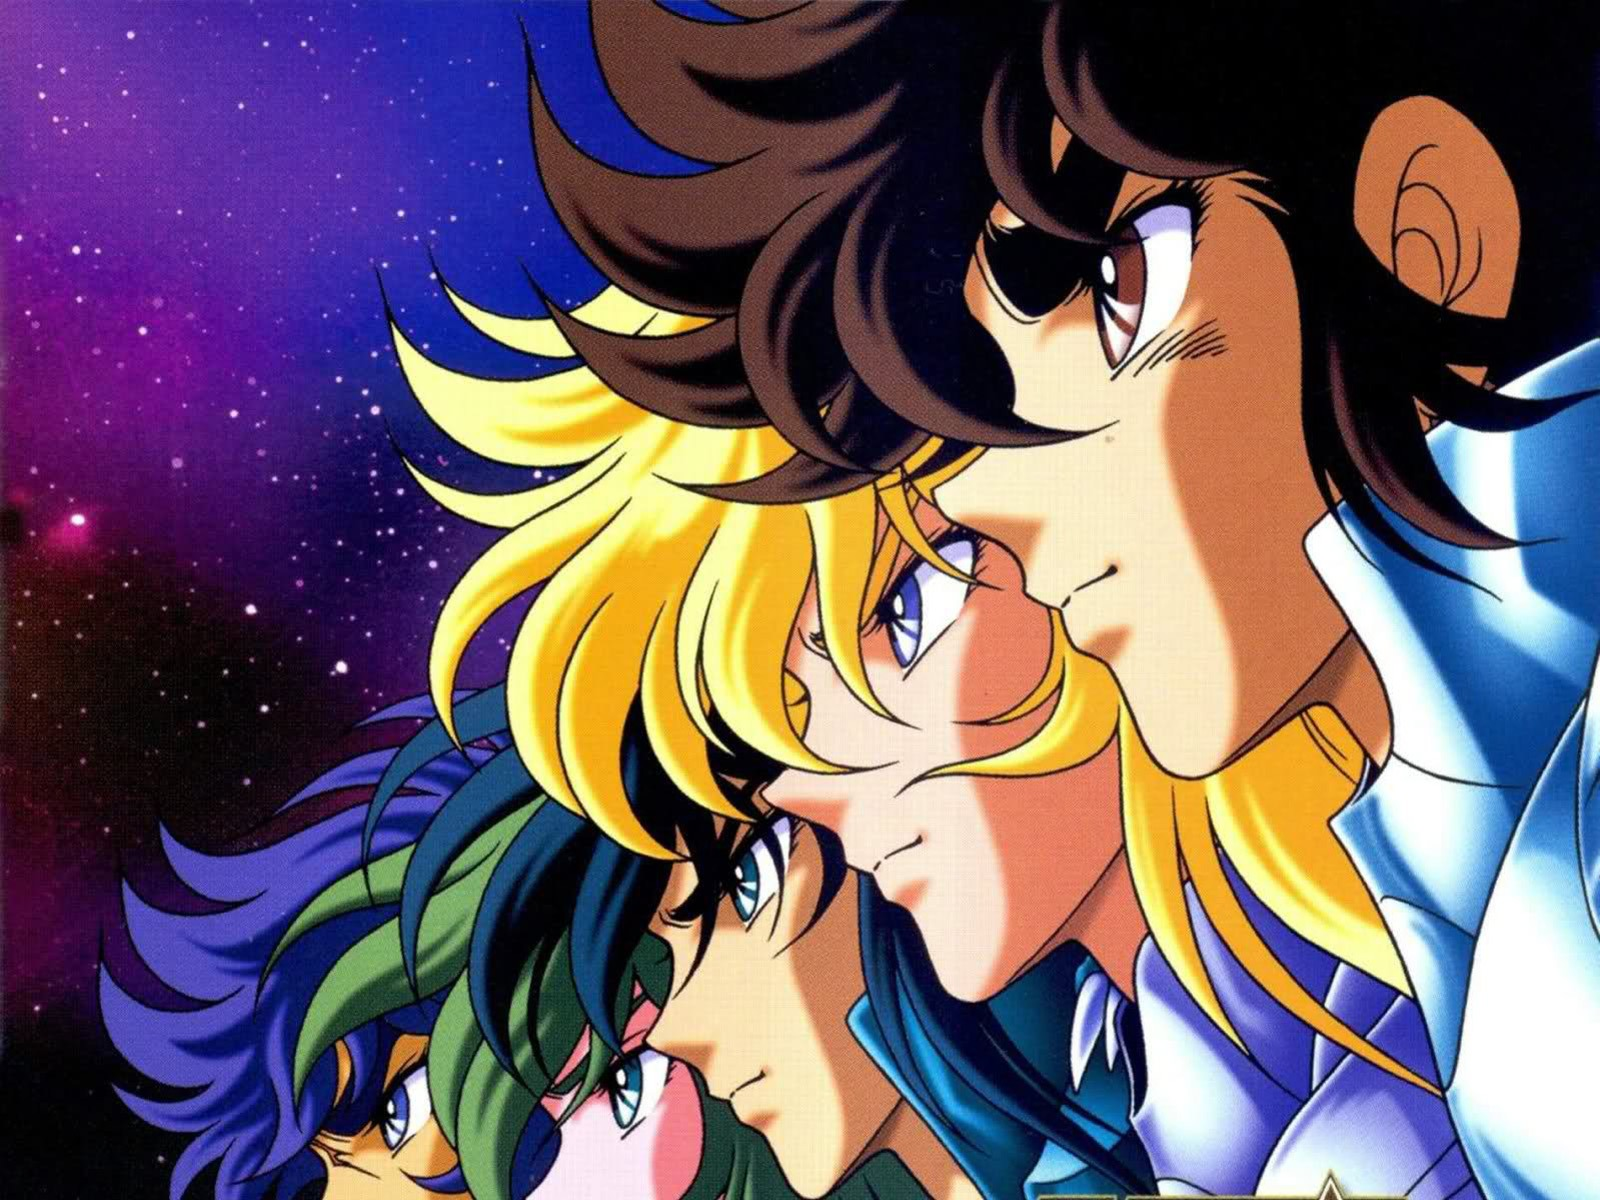 Description: Cartoon Classics - Saint Seiya wallpaper 20 Current Size ...: www.10wallpaper.com/down/Cartoon_Classics_-_Saint_Seiya_wallpaper...